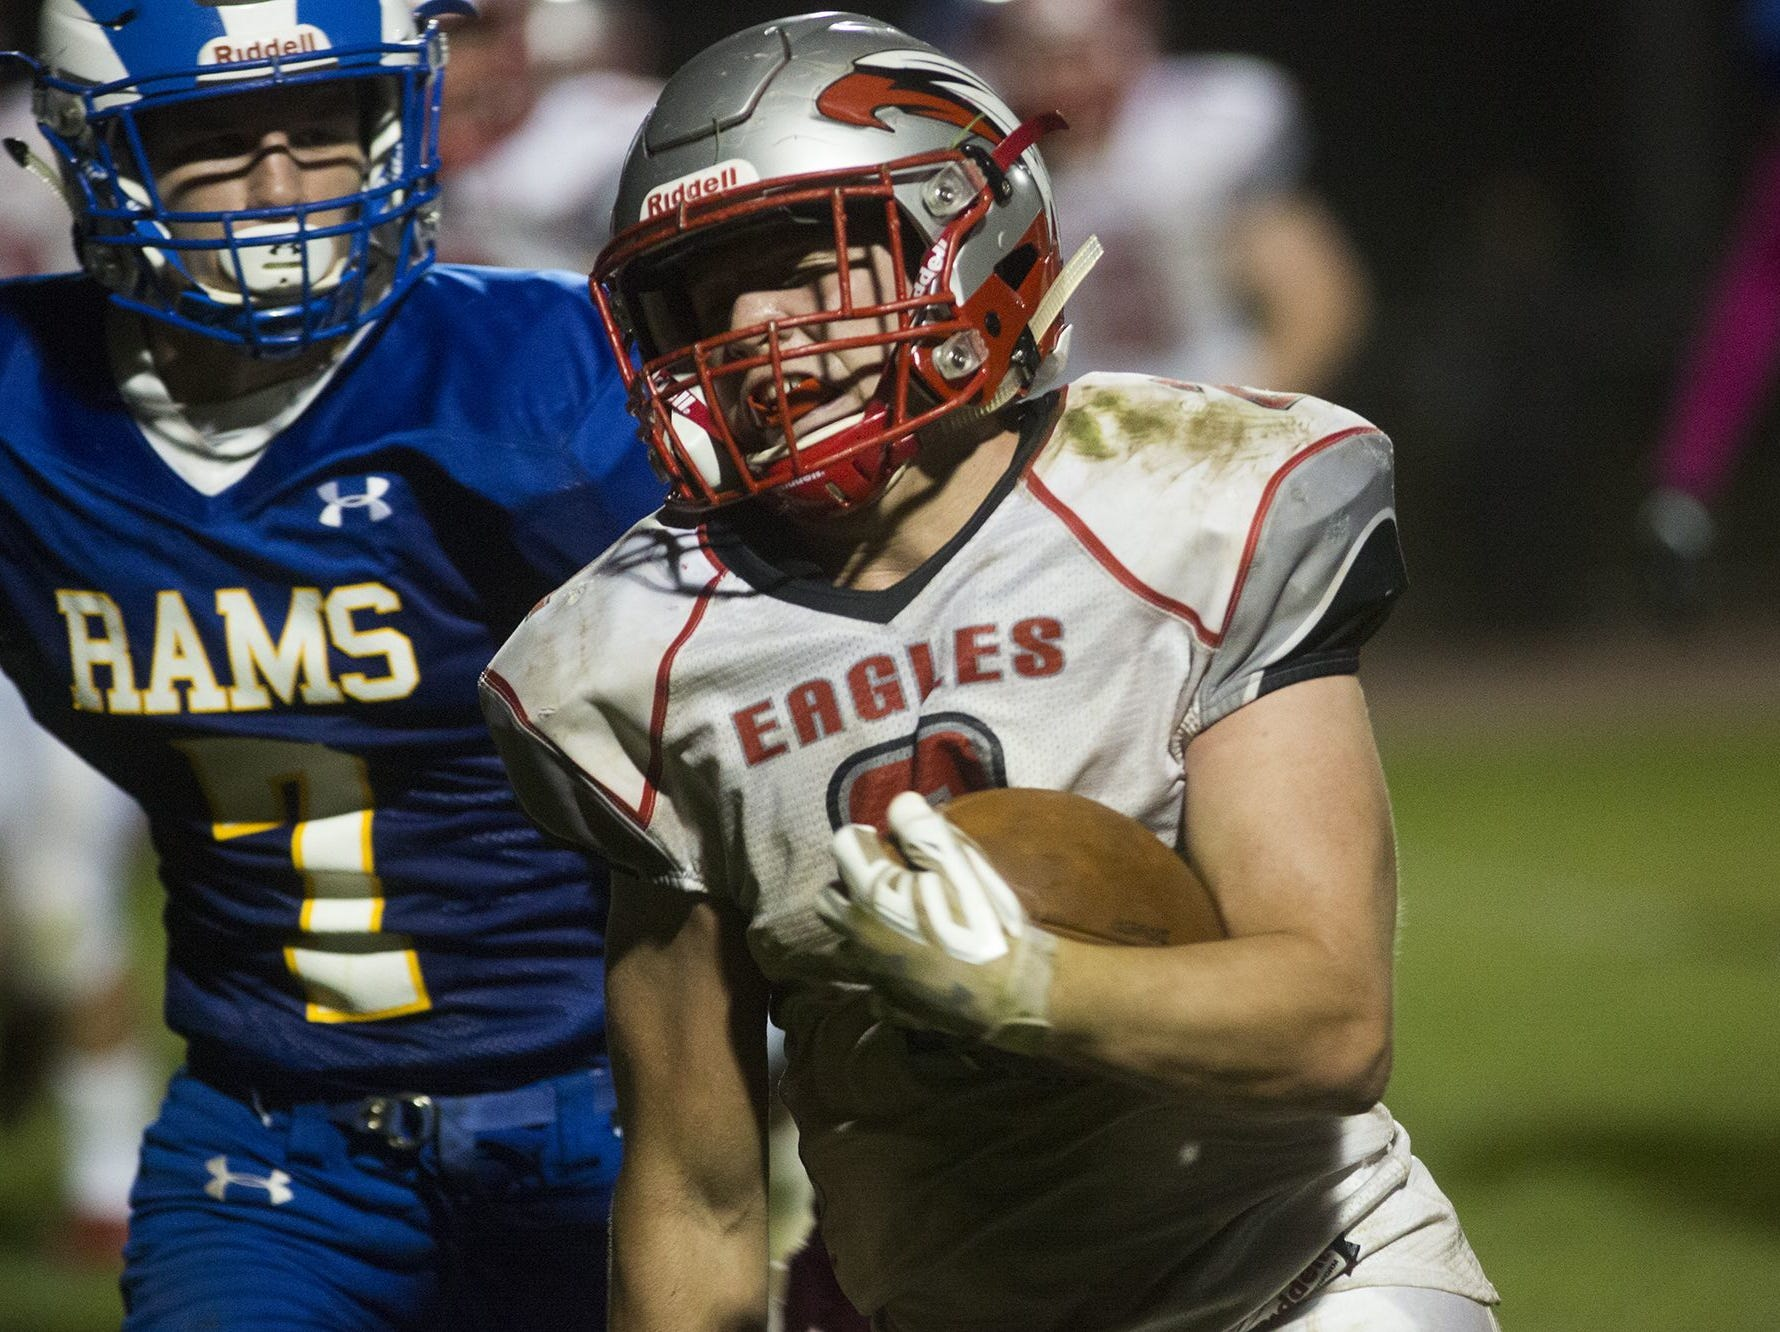 Dover's Brandon Lawyer rushed for 96 yards and a touchdown on 14 carries. Dover's Brandon Lawyer runs with the ball. Kennard-Dale plays Dover in football at Kennard-Dale High School in Fawn Grove, Friday, October 6, 2017.